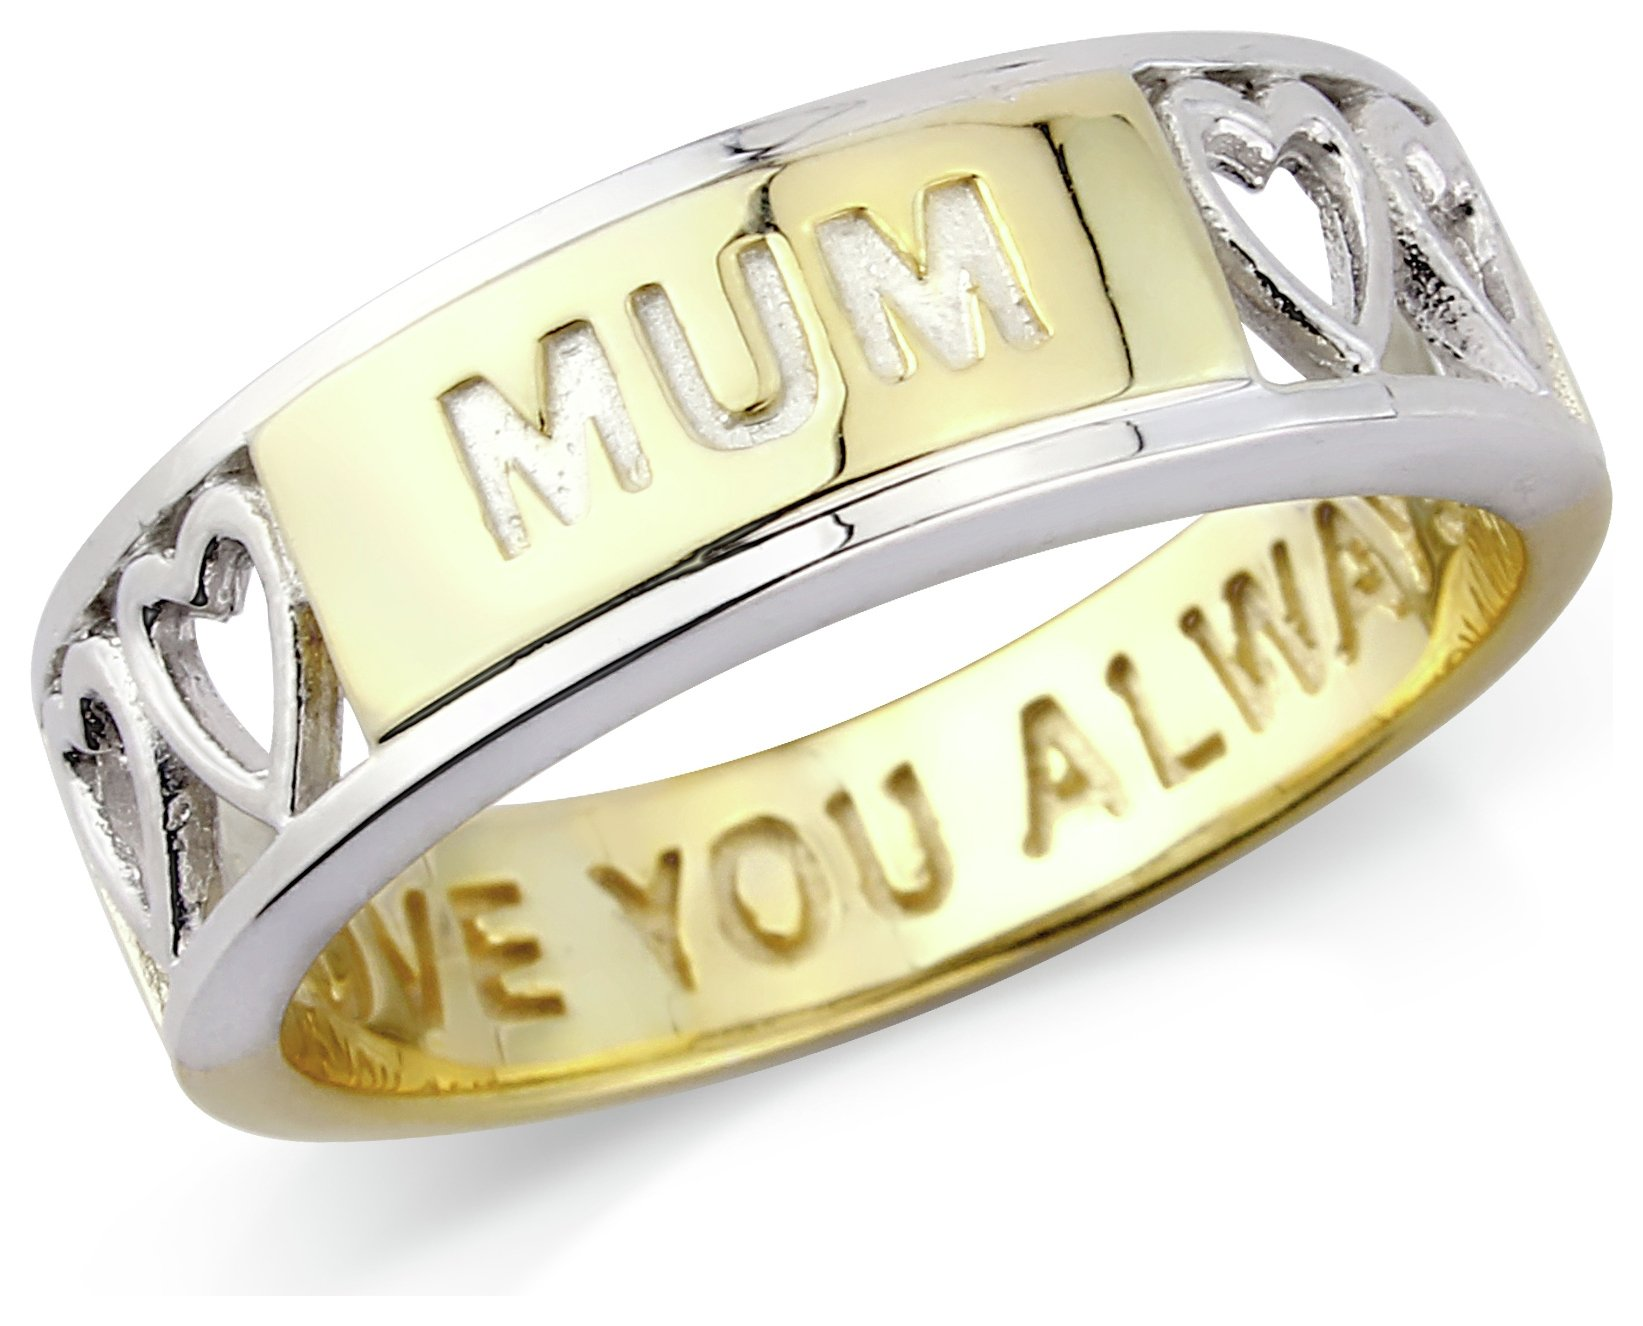 Image of Gold Plated Silver 'Mum' Message Ring - P